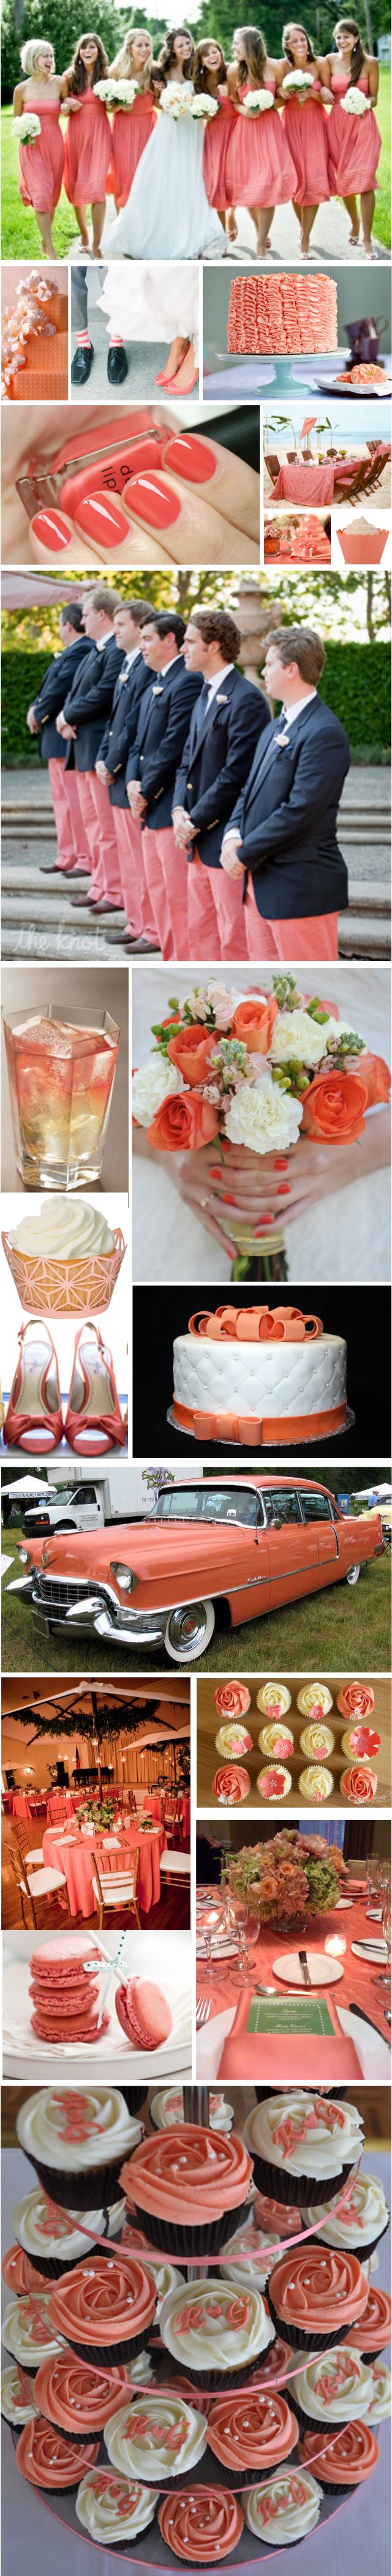 Coral wedding inspiration: Fun and Sophisticated|Random Tuesdays